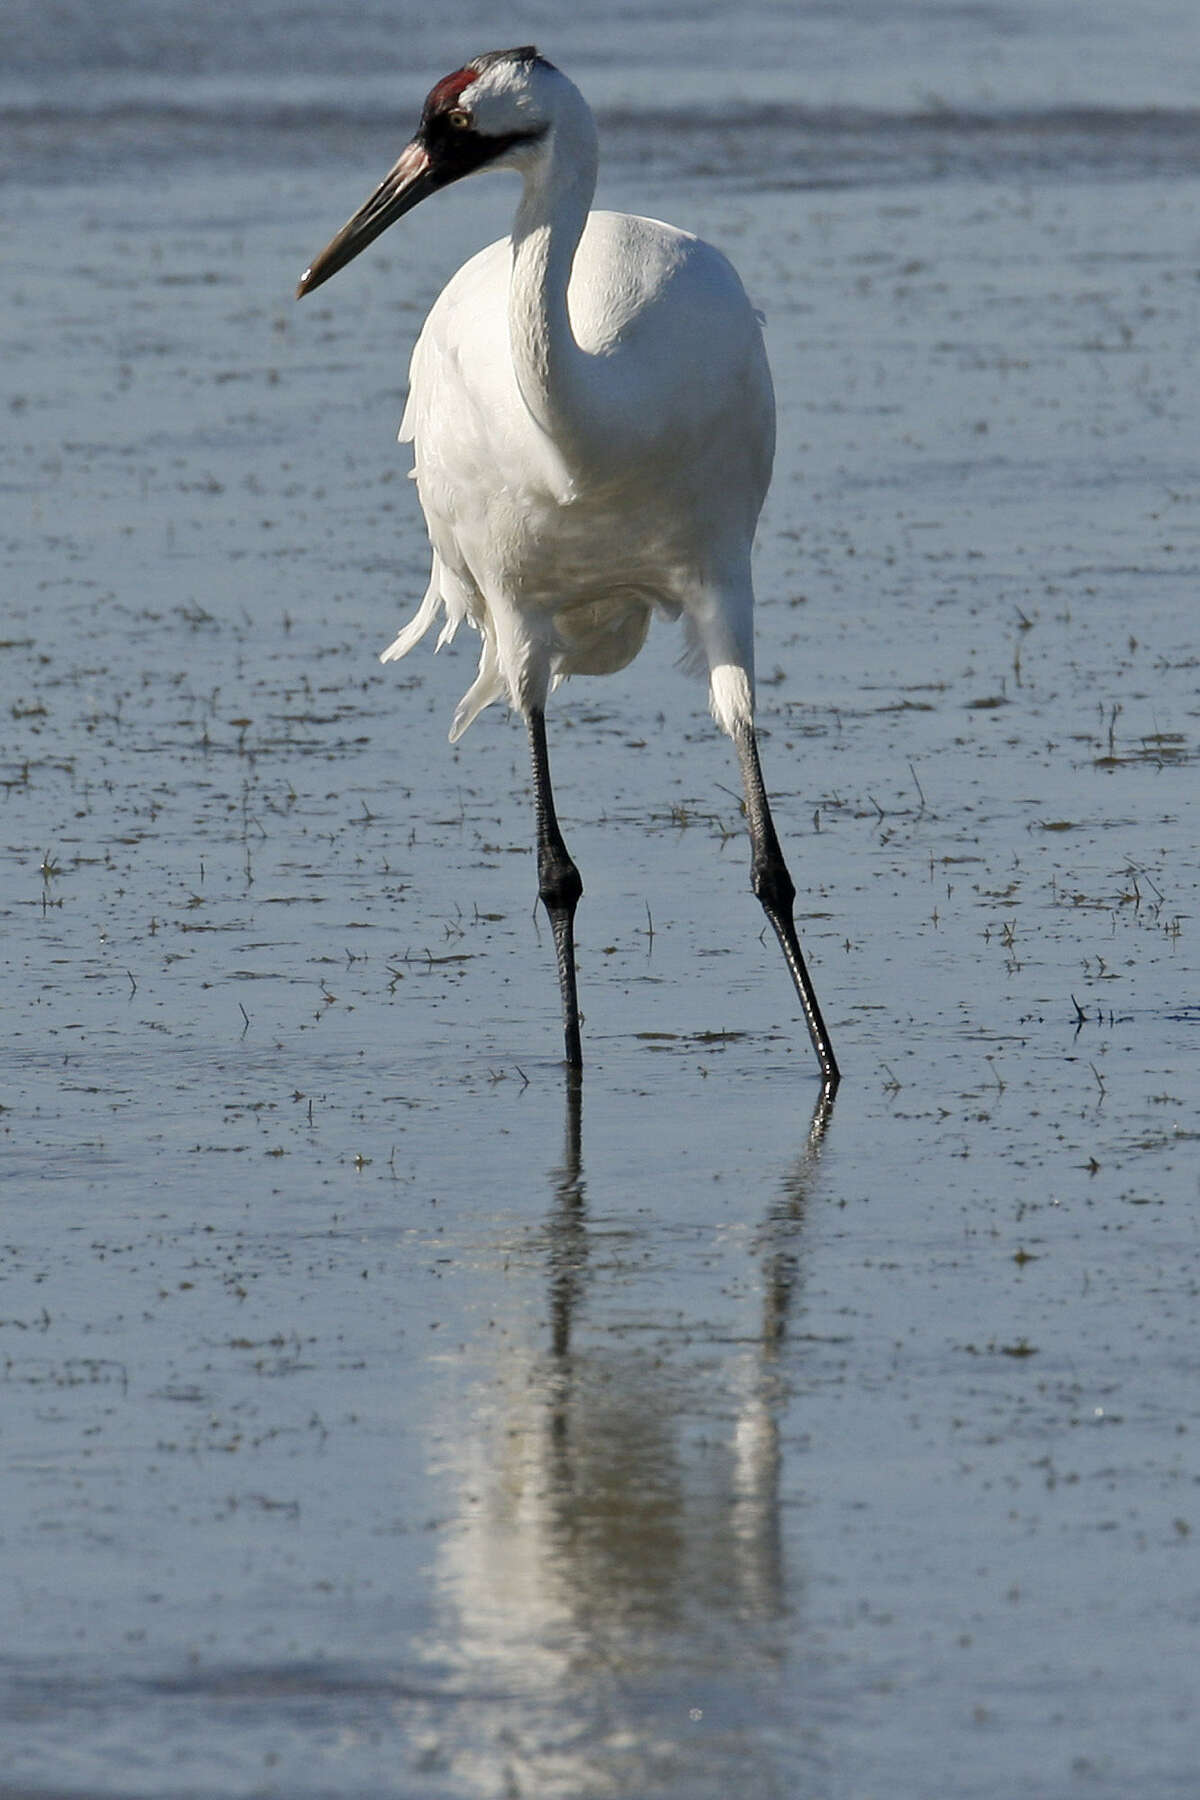 The Aransas Project claims the state is responsible for a major loss of whopping cranes a few winters ago.